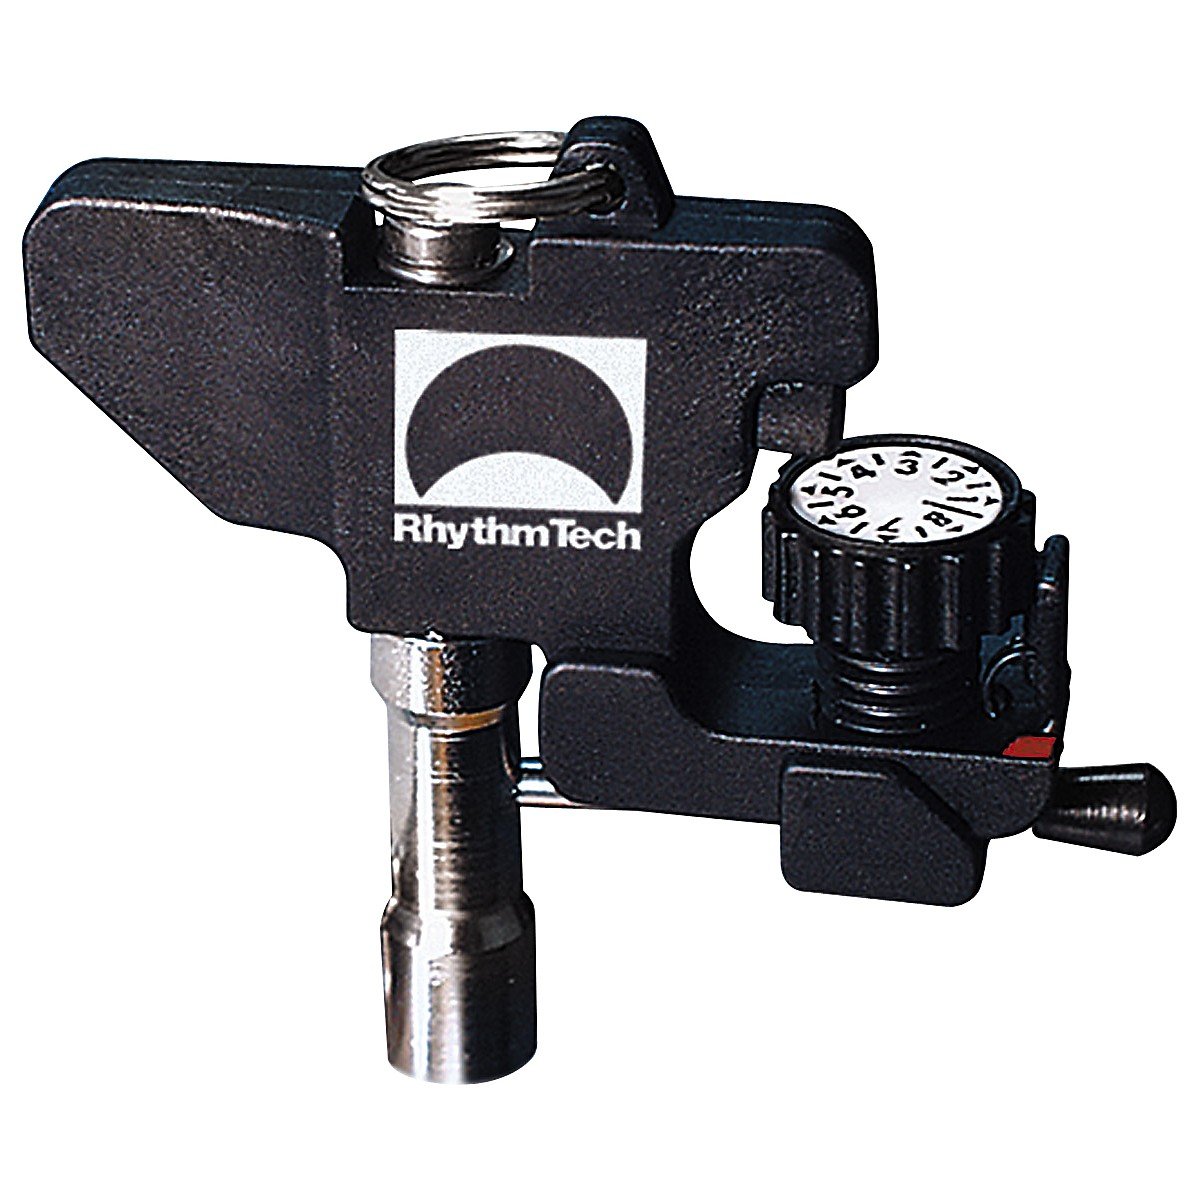 Rhythm Tech Pro Torq Drum Key